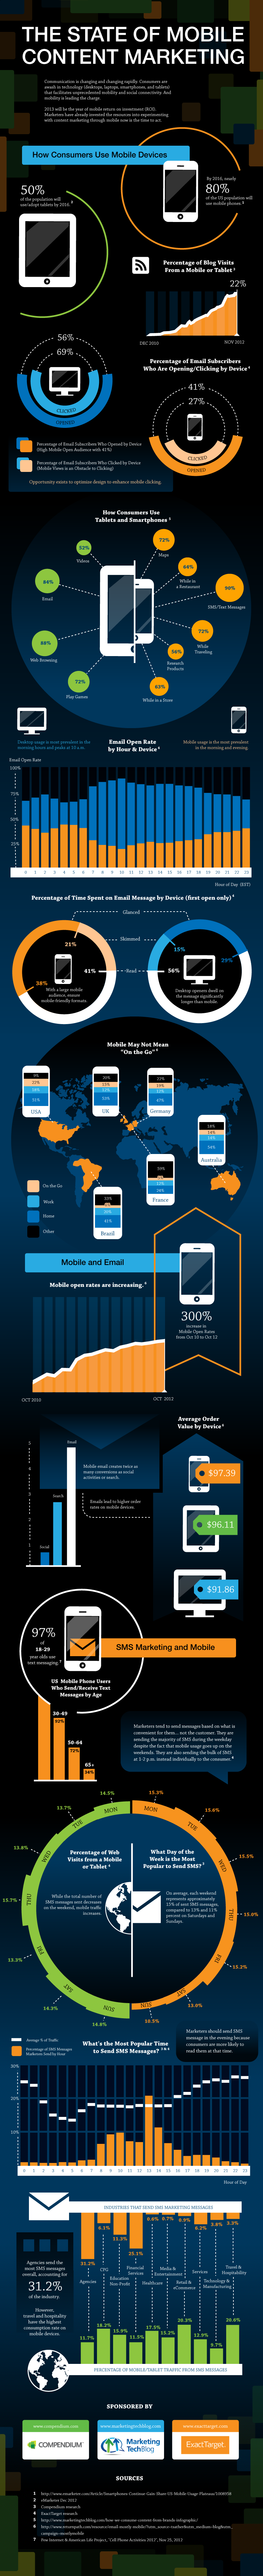 Mobile Content Marketing Infographic